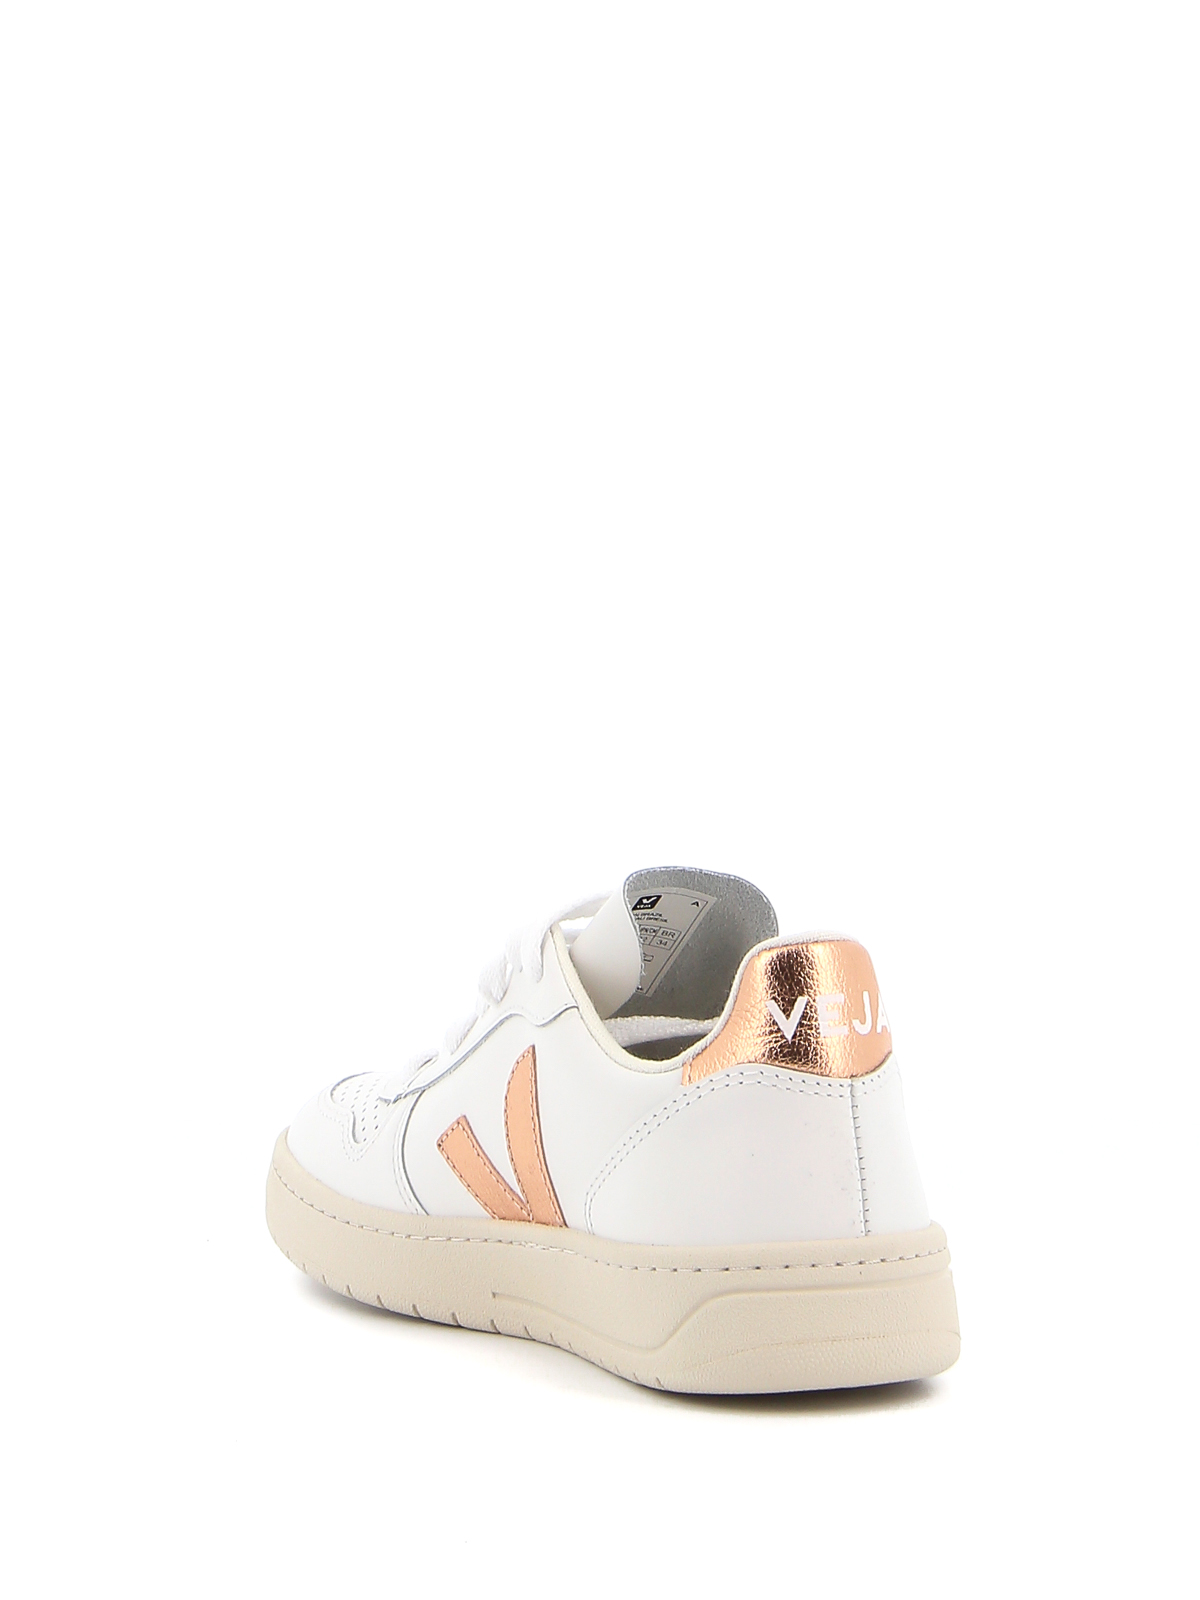 Veja - V-10 sneakers - trainers